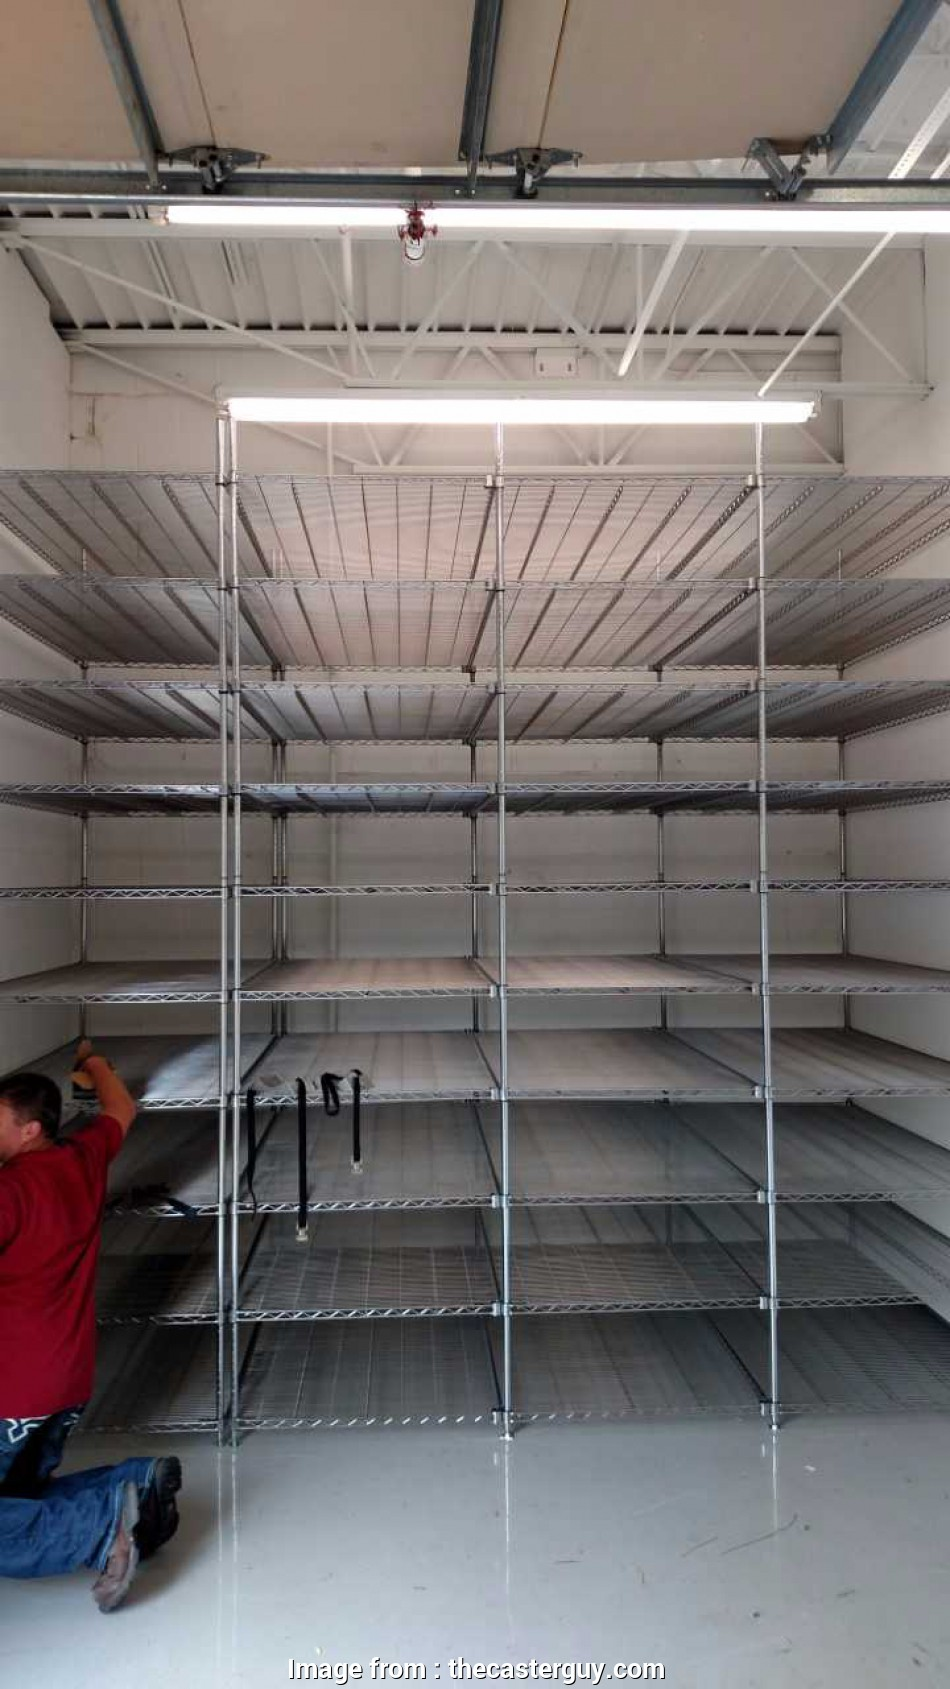 intermetro wire shelving Intermetro Wire Shelving,, Caster Guy 9 Top Intermetro Wire Shelving Pictures